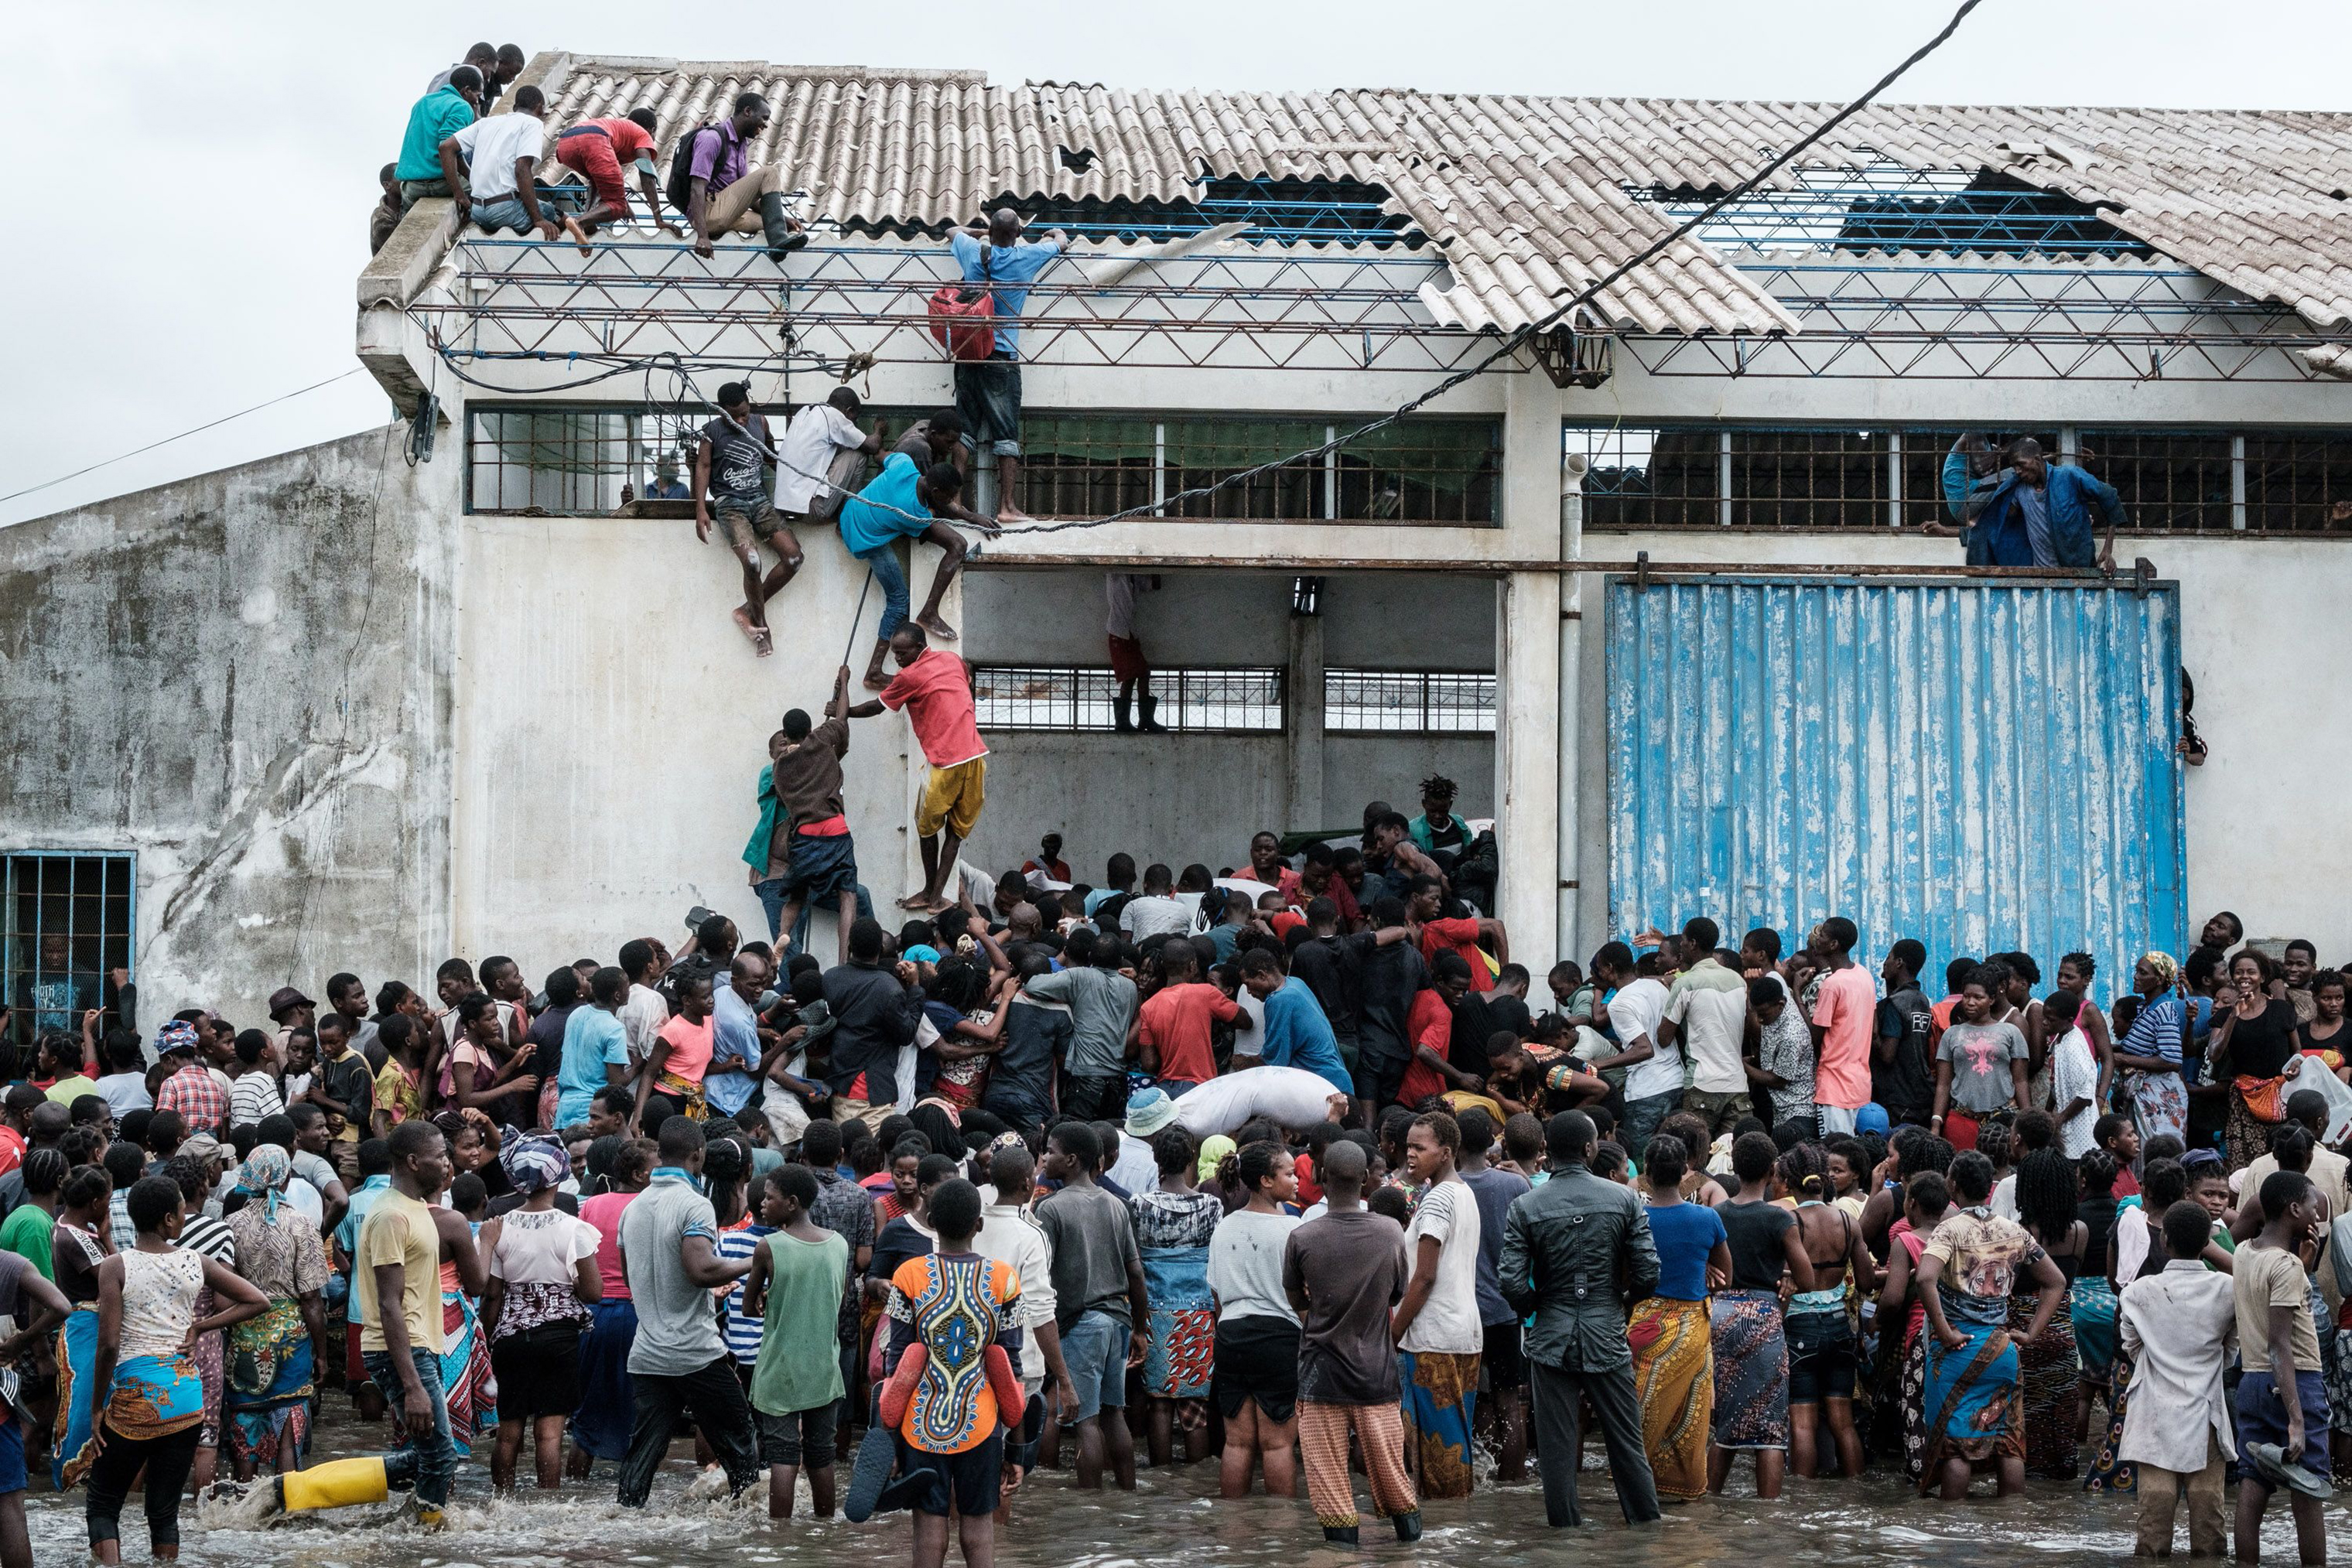 People looting sacks of Chinese rice from a warehouse surrounded by water in Beira, Mozambique, on March 20, 2019.